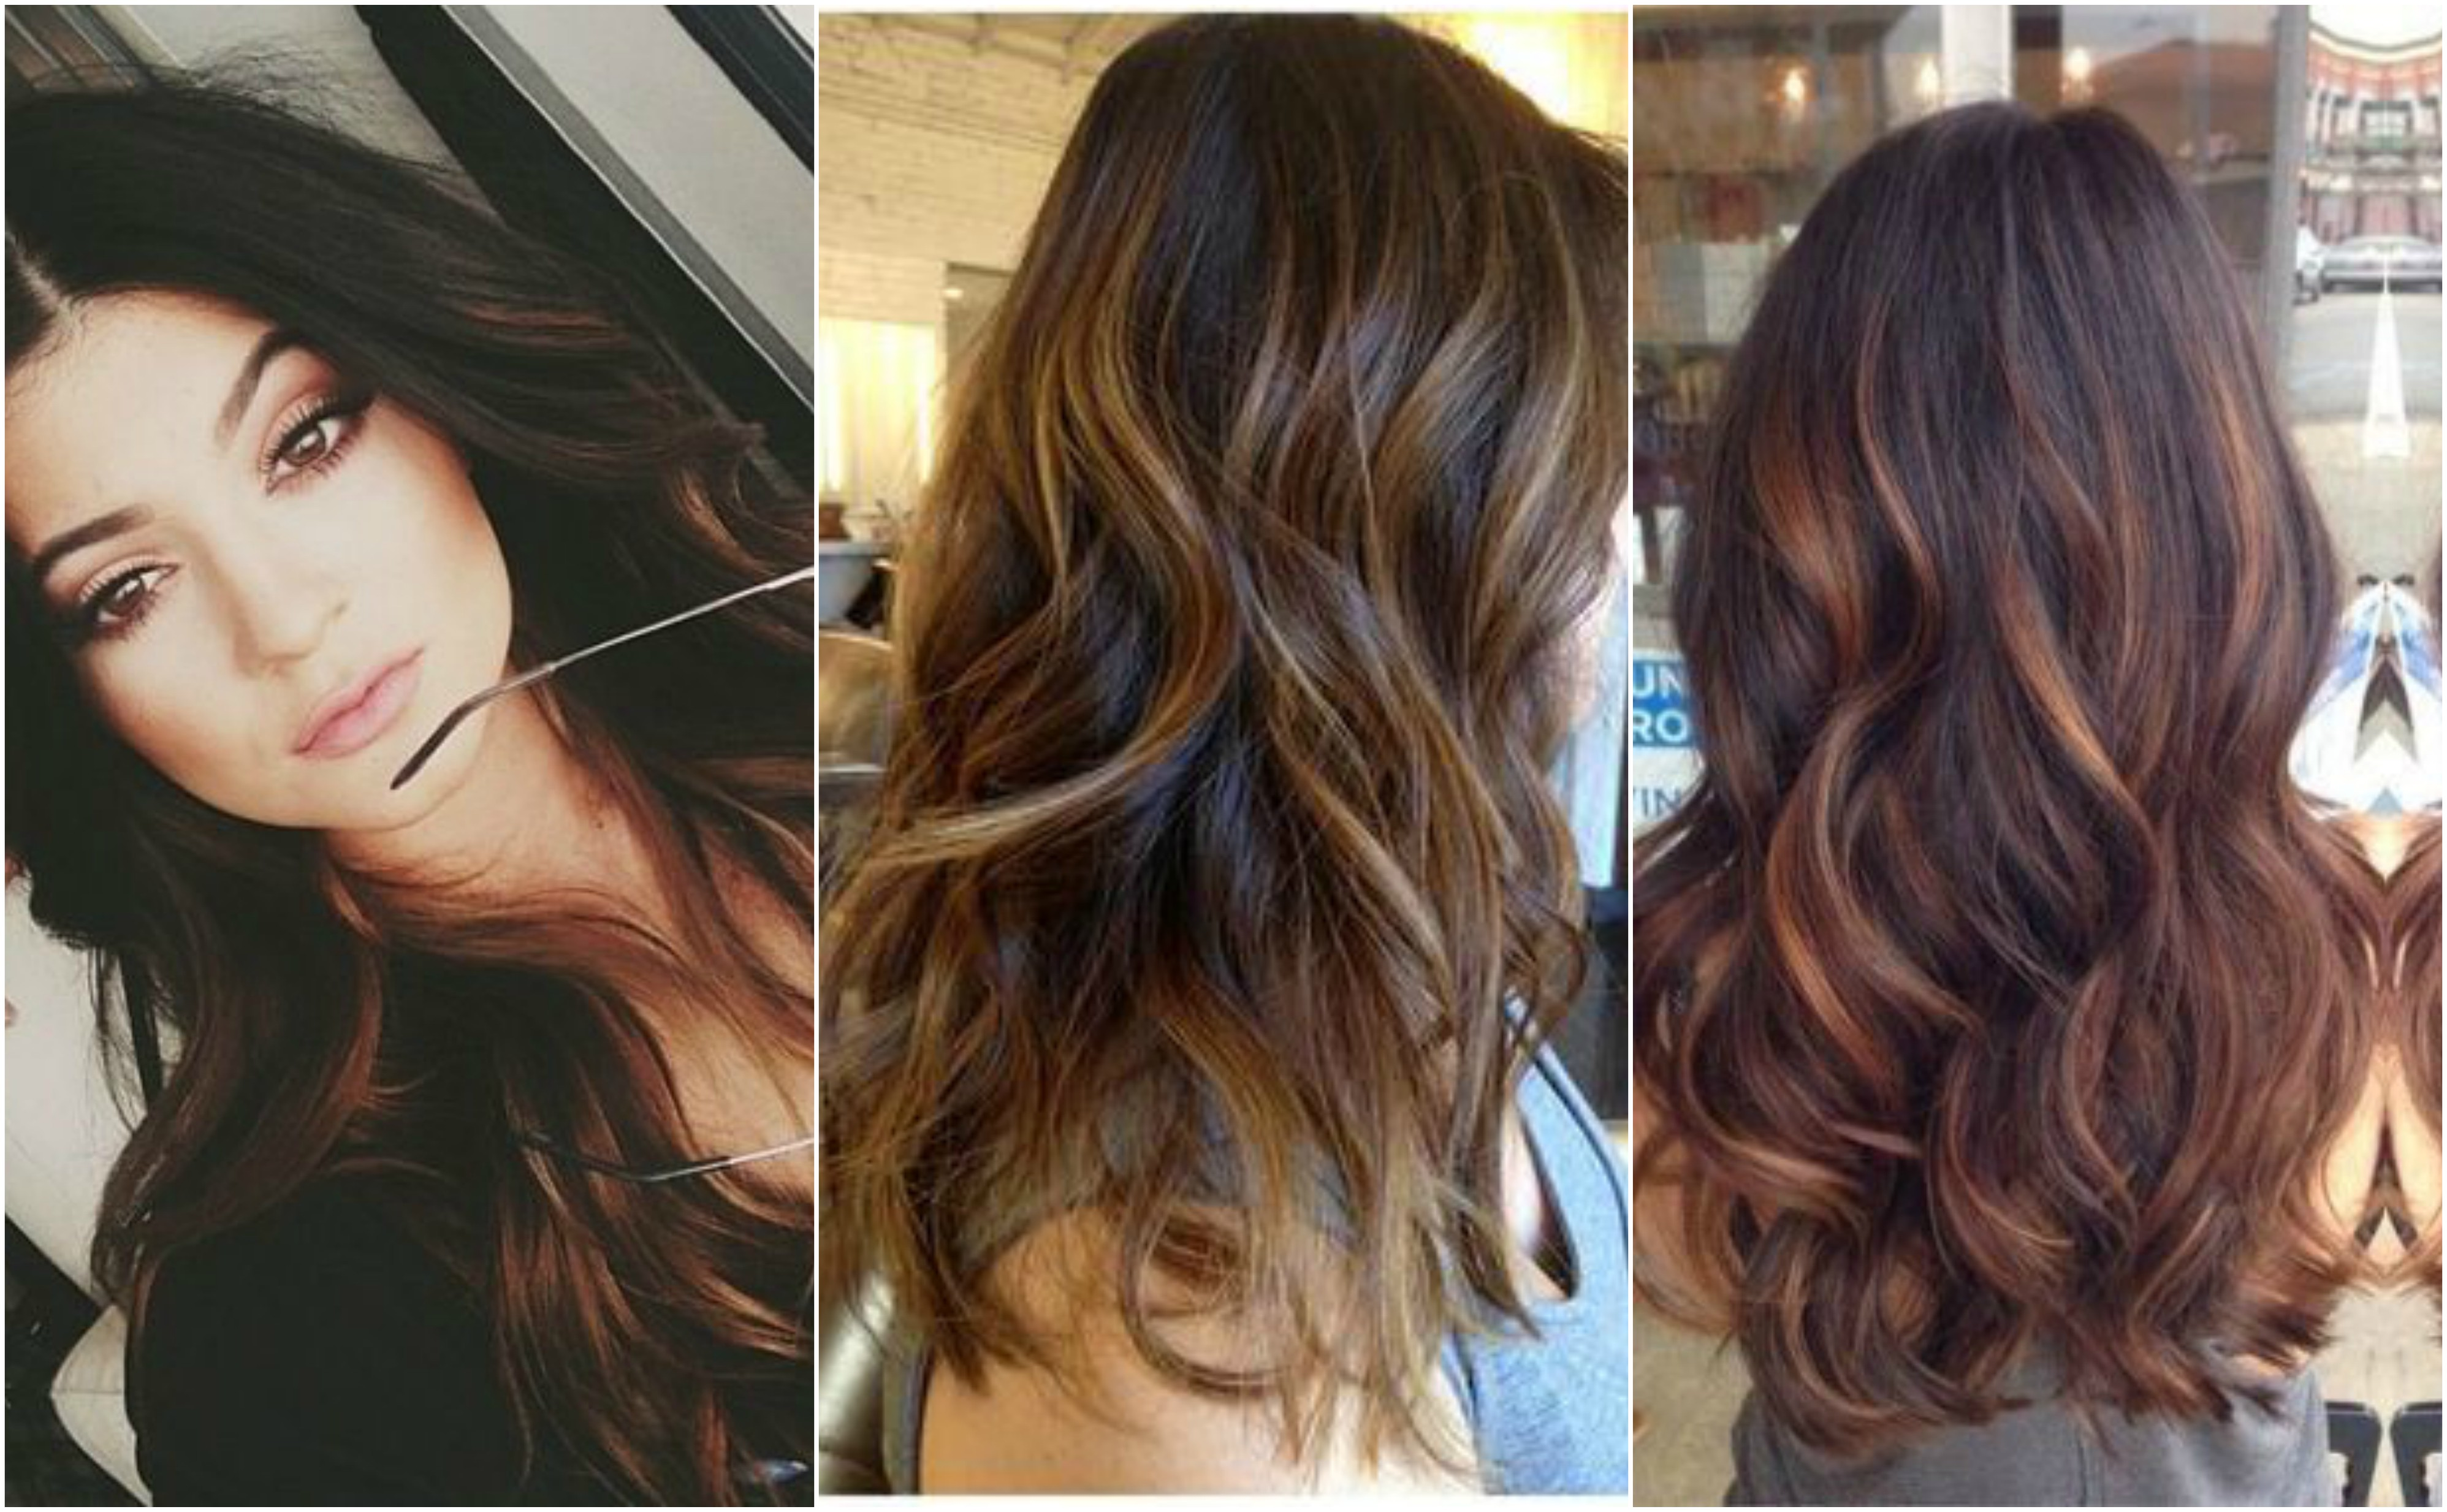 The 9 Best Ways To Highlight Your Hair Using The Balayage Technique